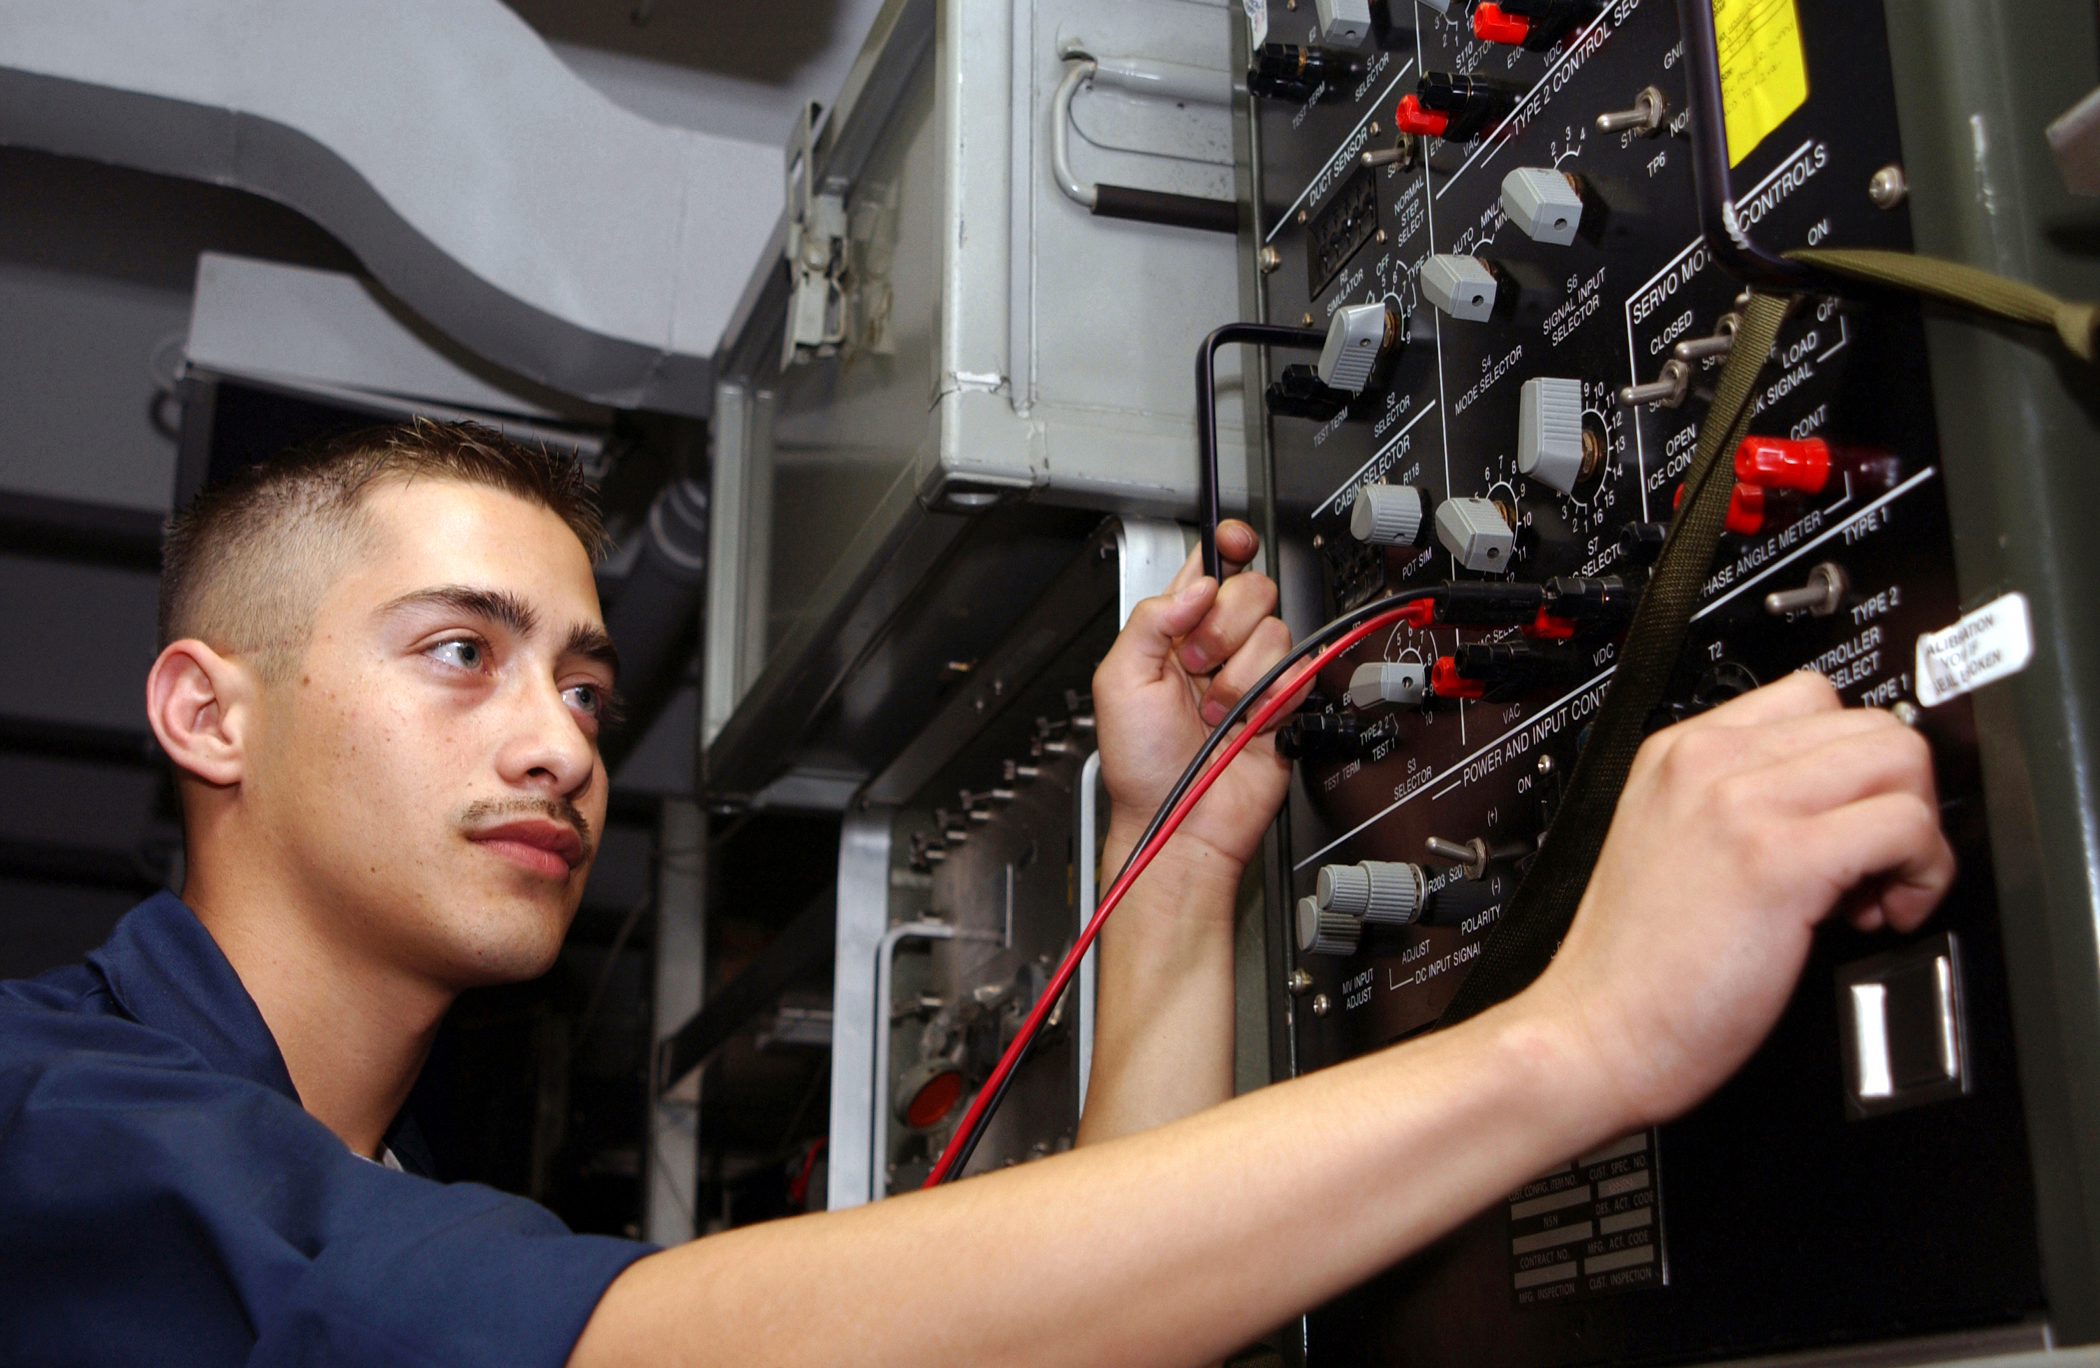 Hire an electrician who can be trusted